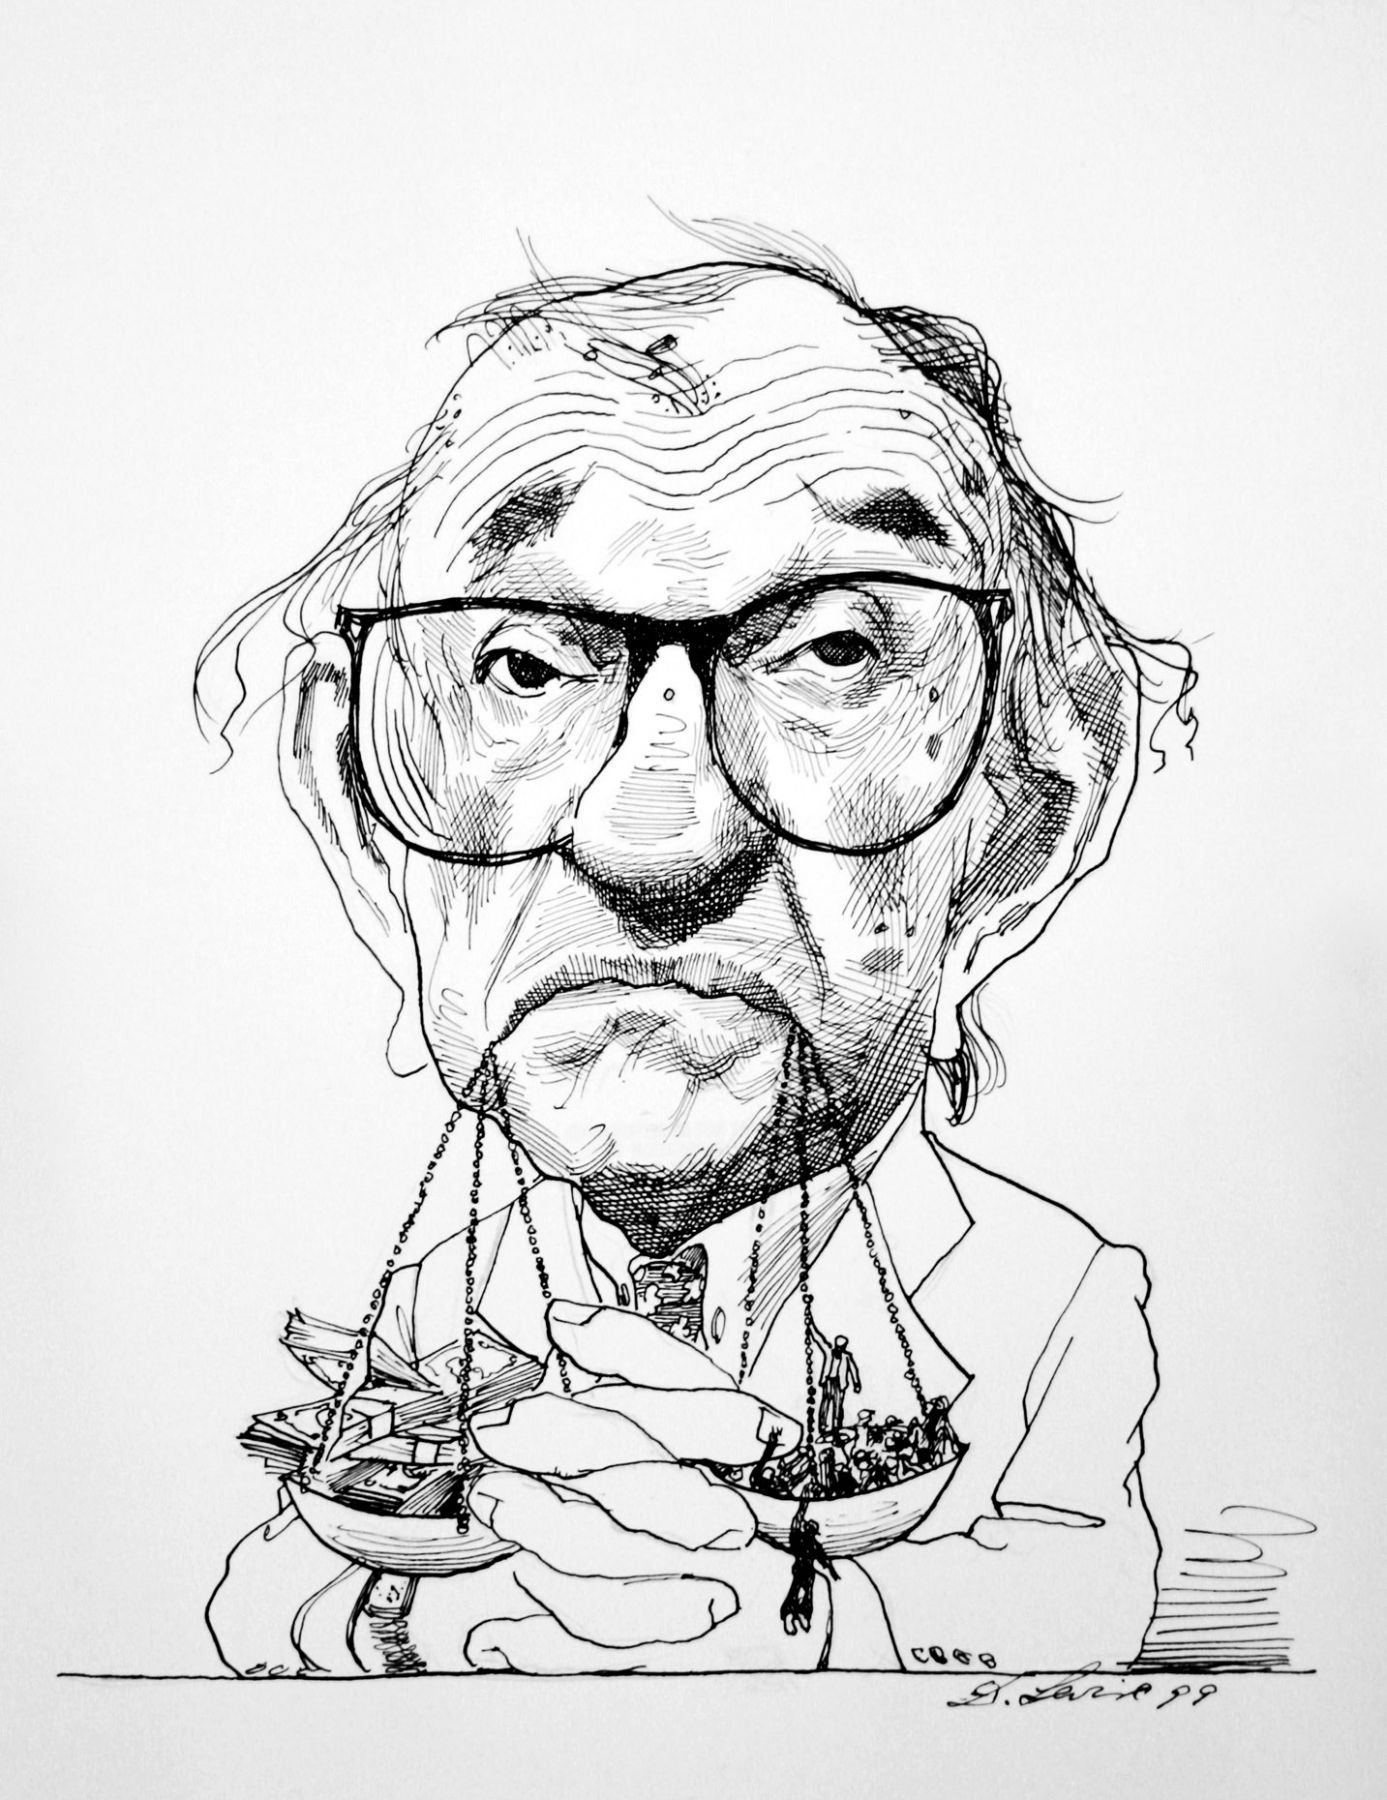 David Levine, Greenspan (SOLD), 1999, ink on paper, 14 x 11 inches